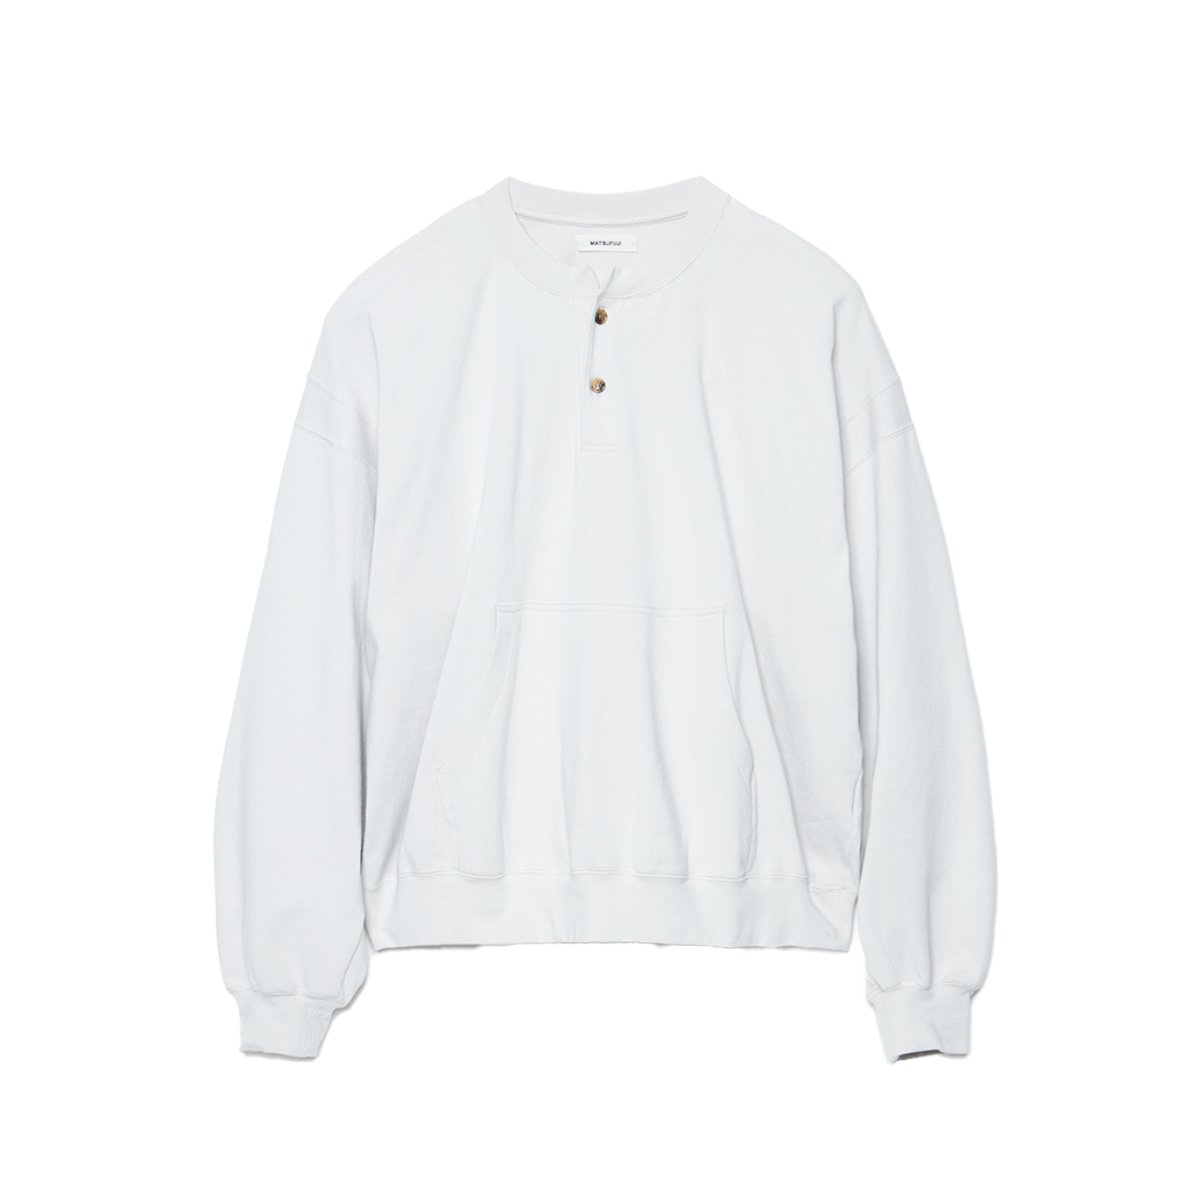 <img class='new_mark_img1' src='https://img.shop-pro.jp/img/new/icons5.gif' style='border:none;display:inline;margin:0px;padding:0px;width:auto;' />Henry Neck Sweat Shirt / L.GRAY